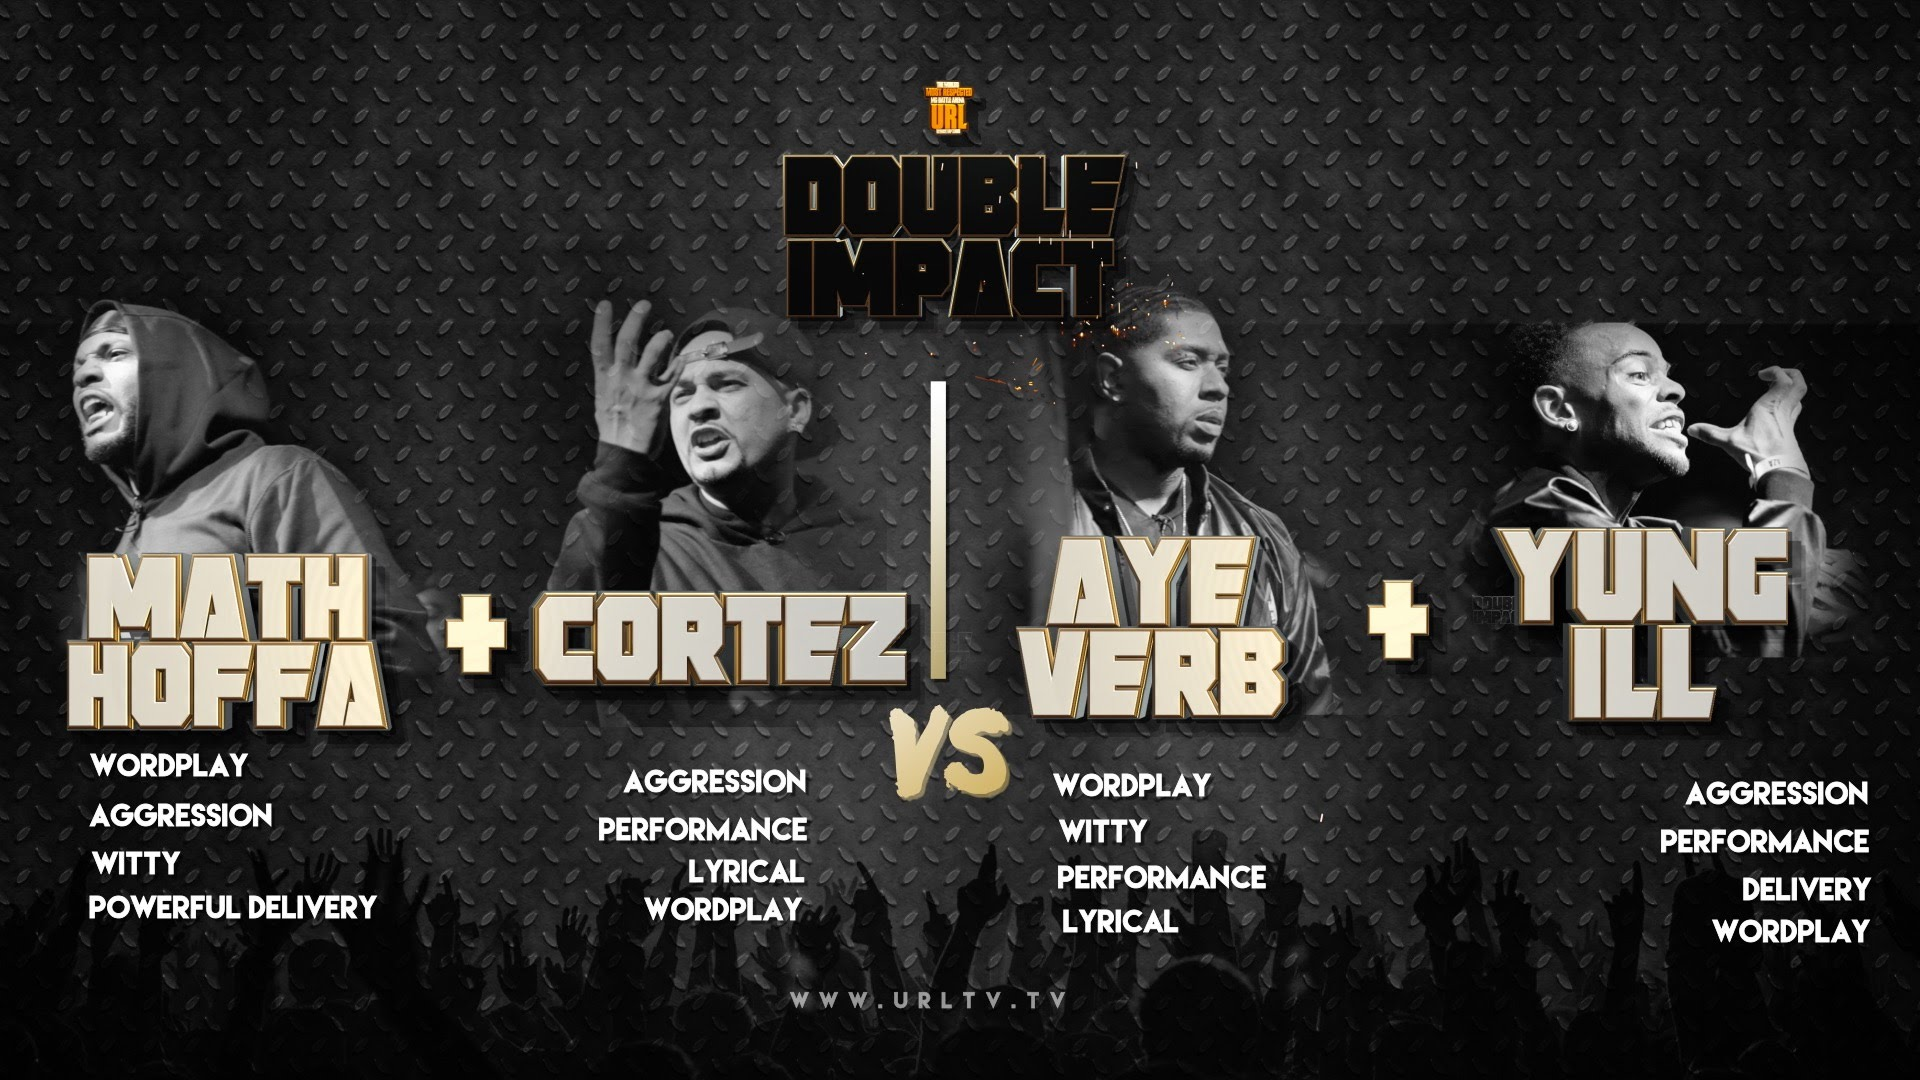 math hoffa  cortez vs aye verb  yung ill from url